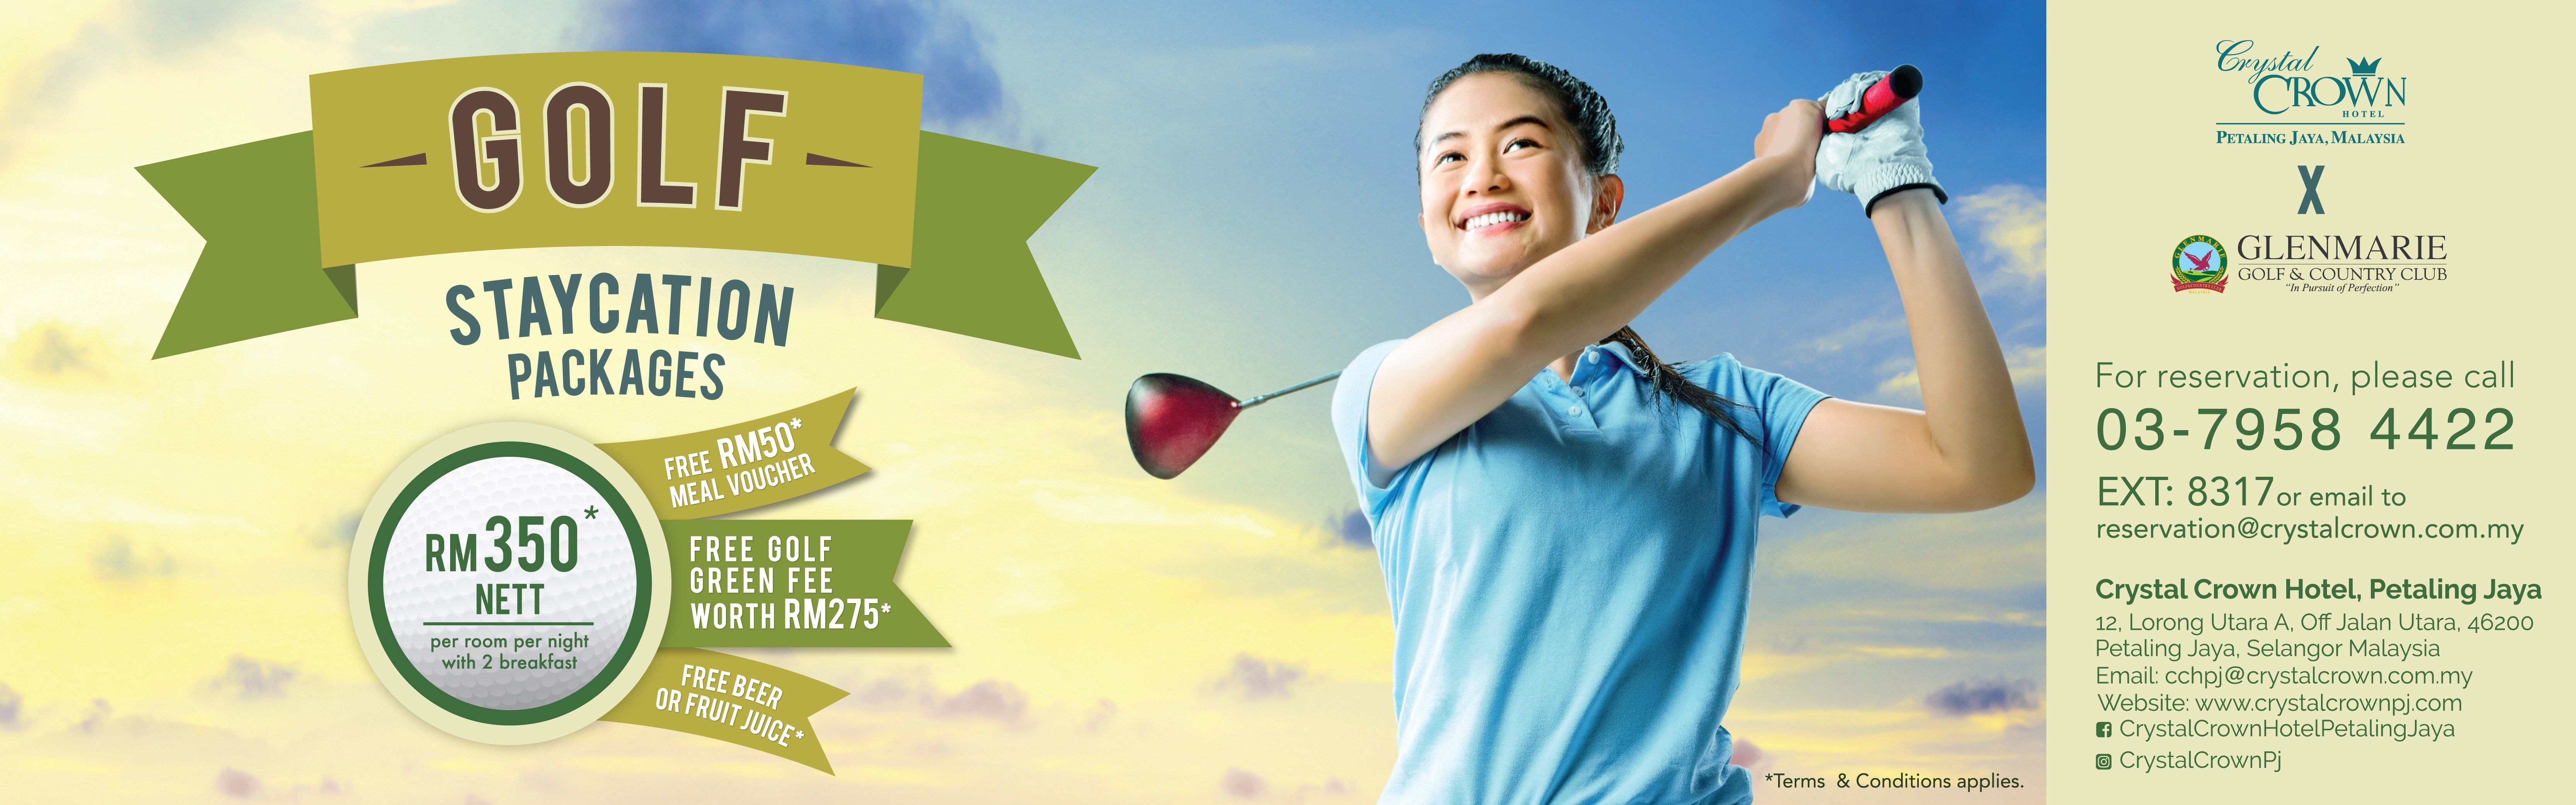 Golf Staycation Package chpj update header